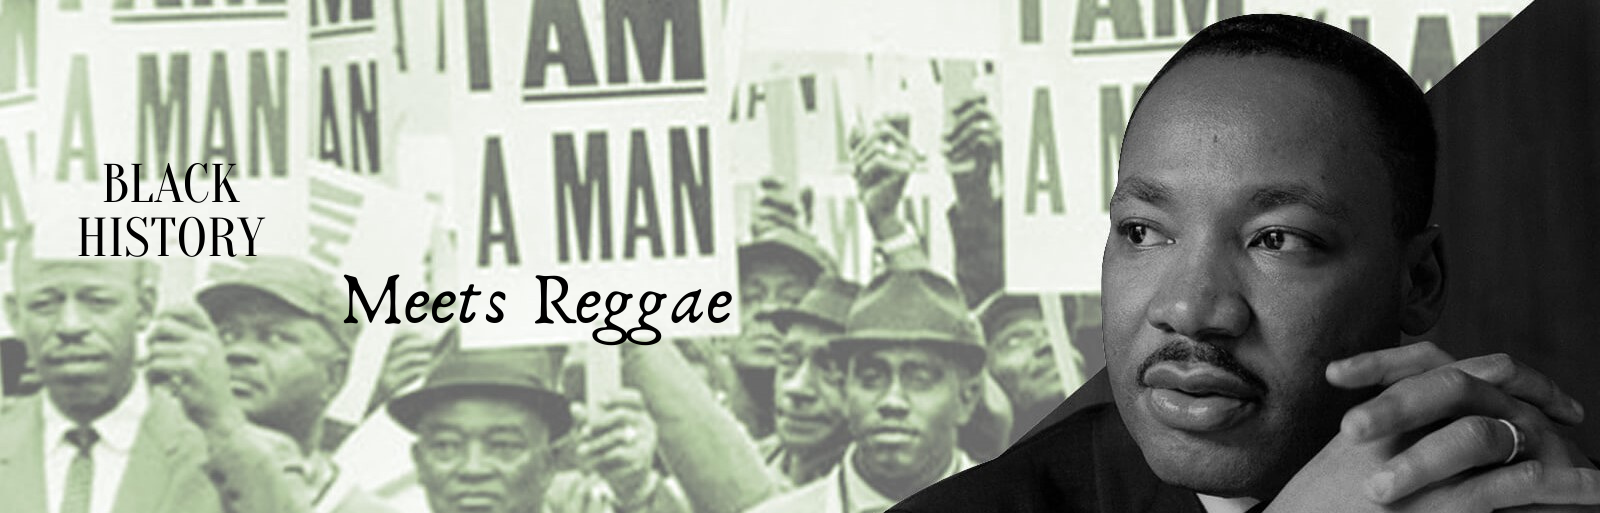 CITY OF MIRAMAR ANNOUNCES CELEBRATIONS IN HONOR OFREVEREND. DR. MARTIN LUTHER KING DAY and BLACK HISTORY MEETS REGGAE MONTH